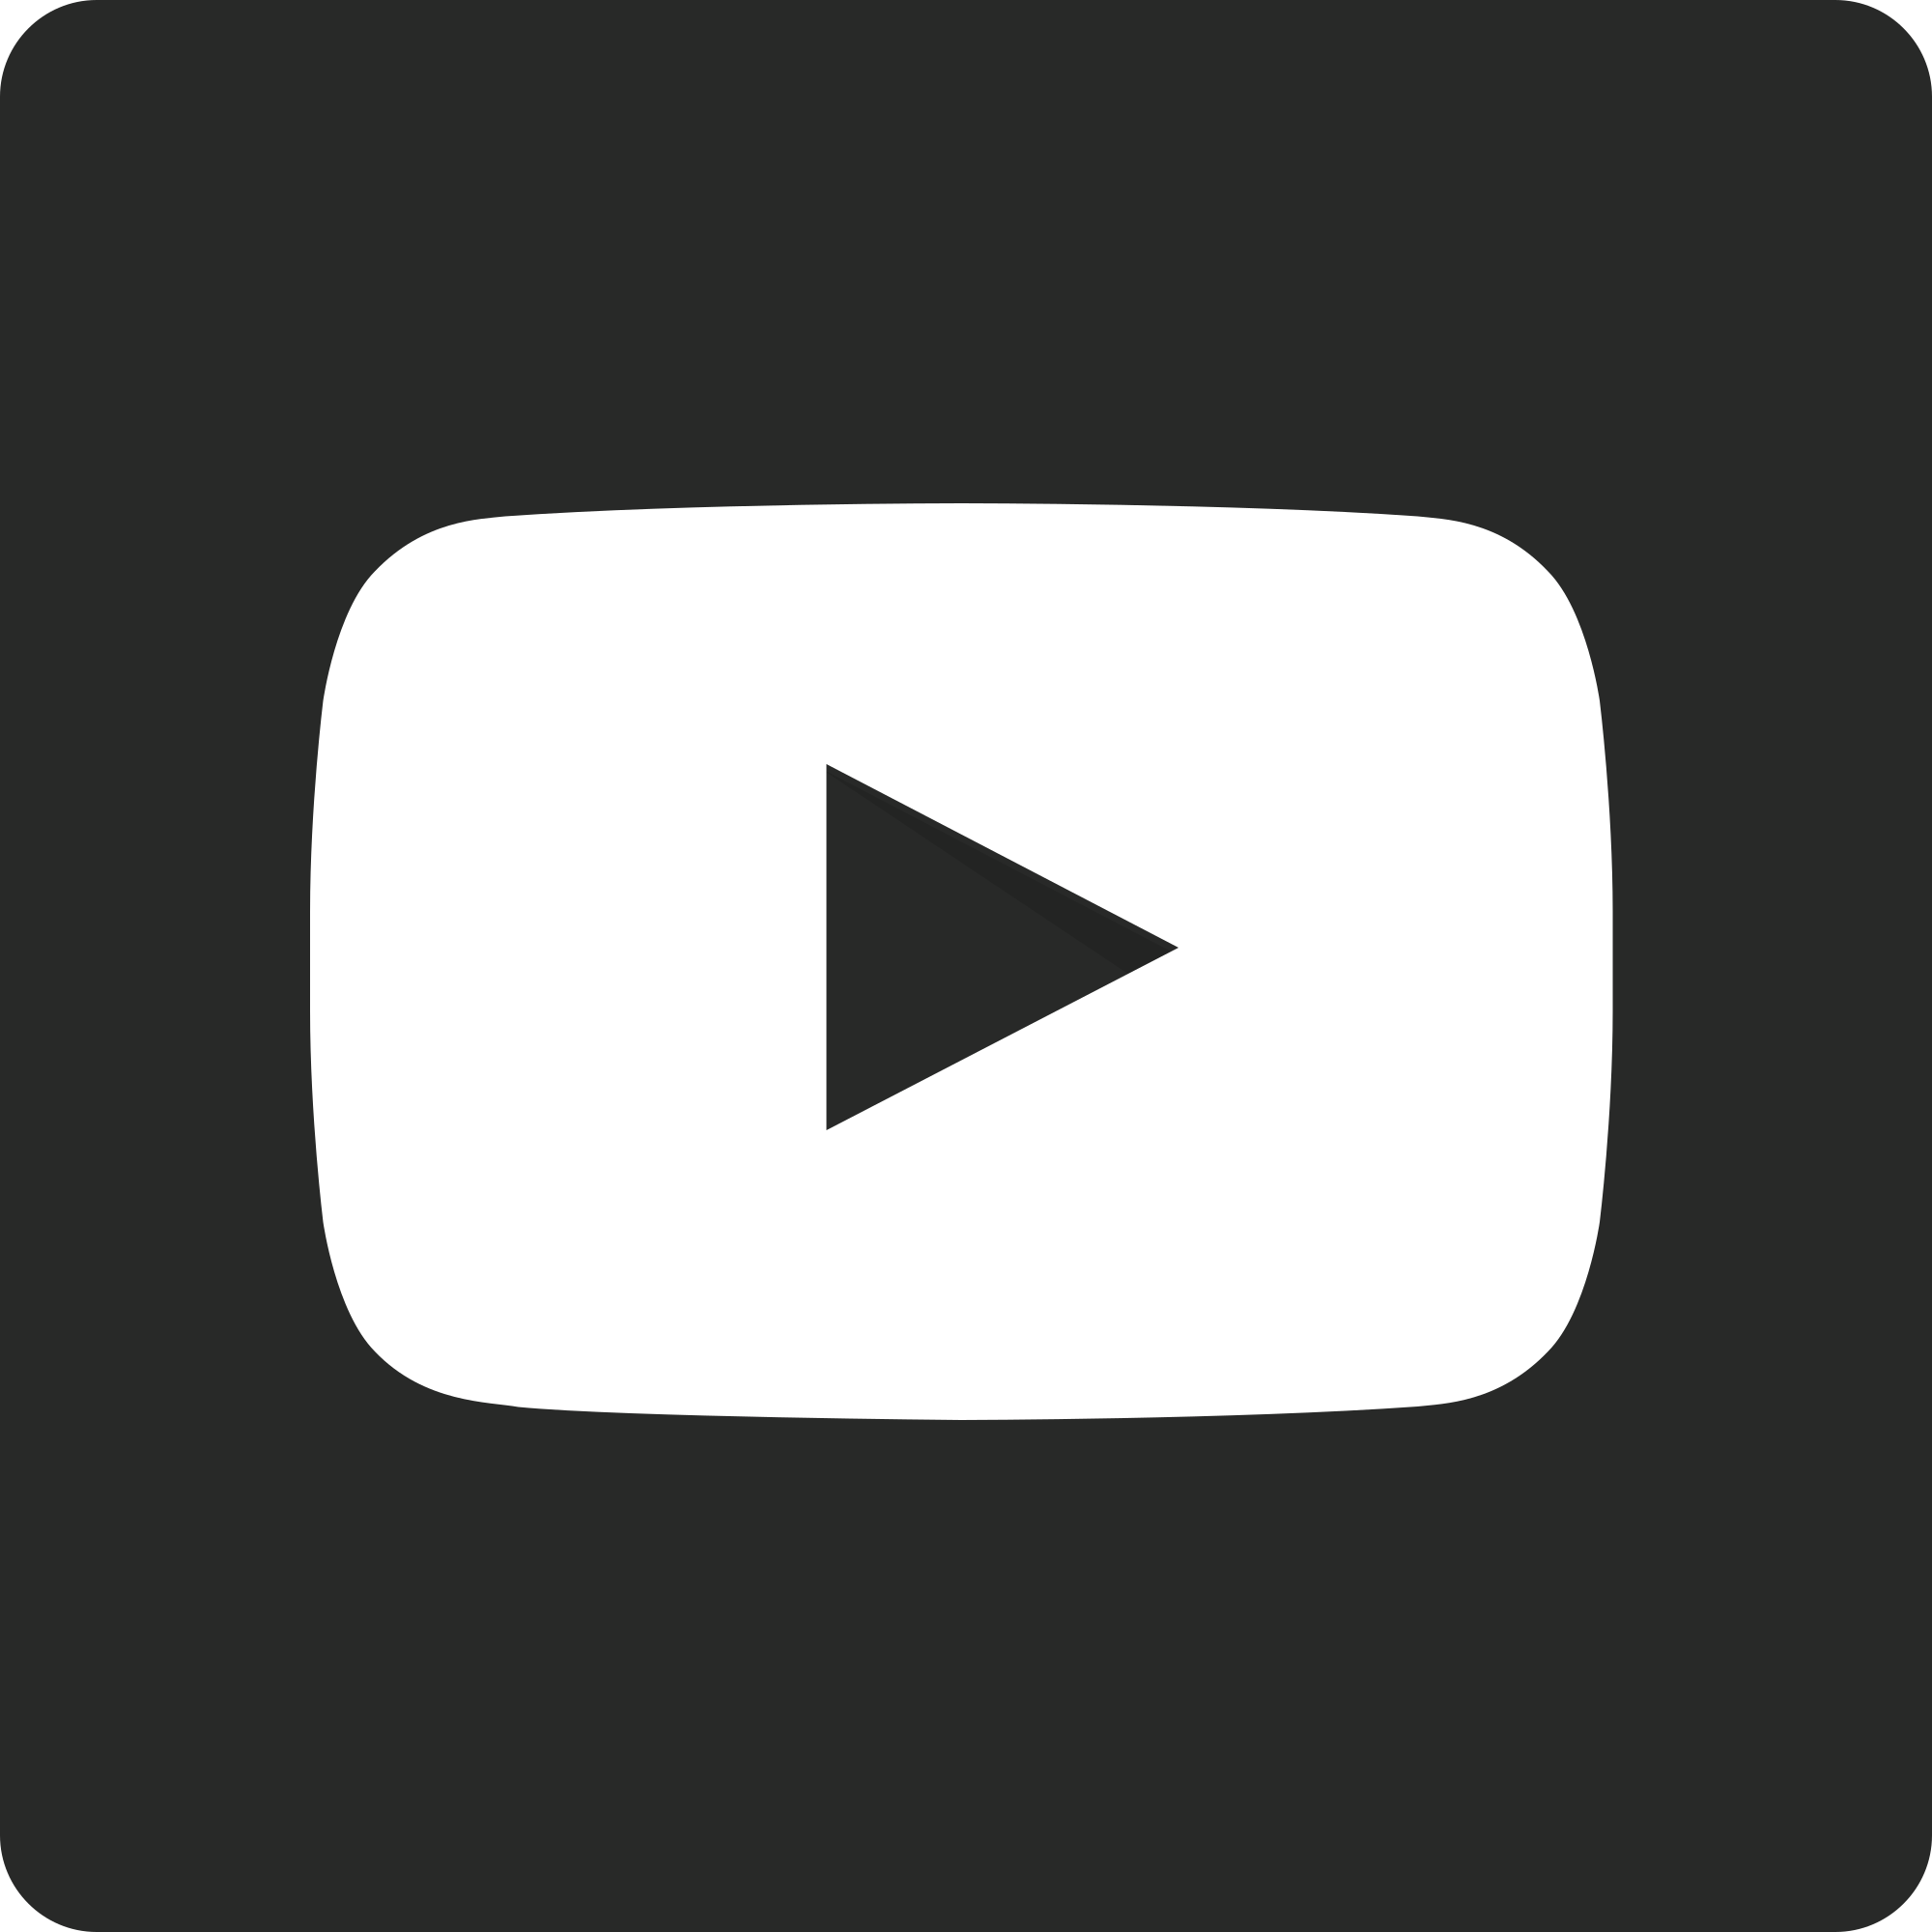 2000x2000 Fileyoutube Play Button Dark Rounded Square (2013 2017).svg